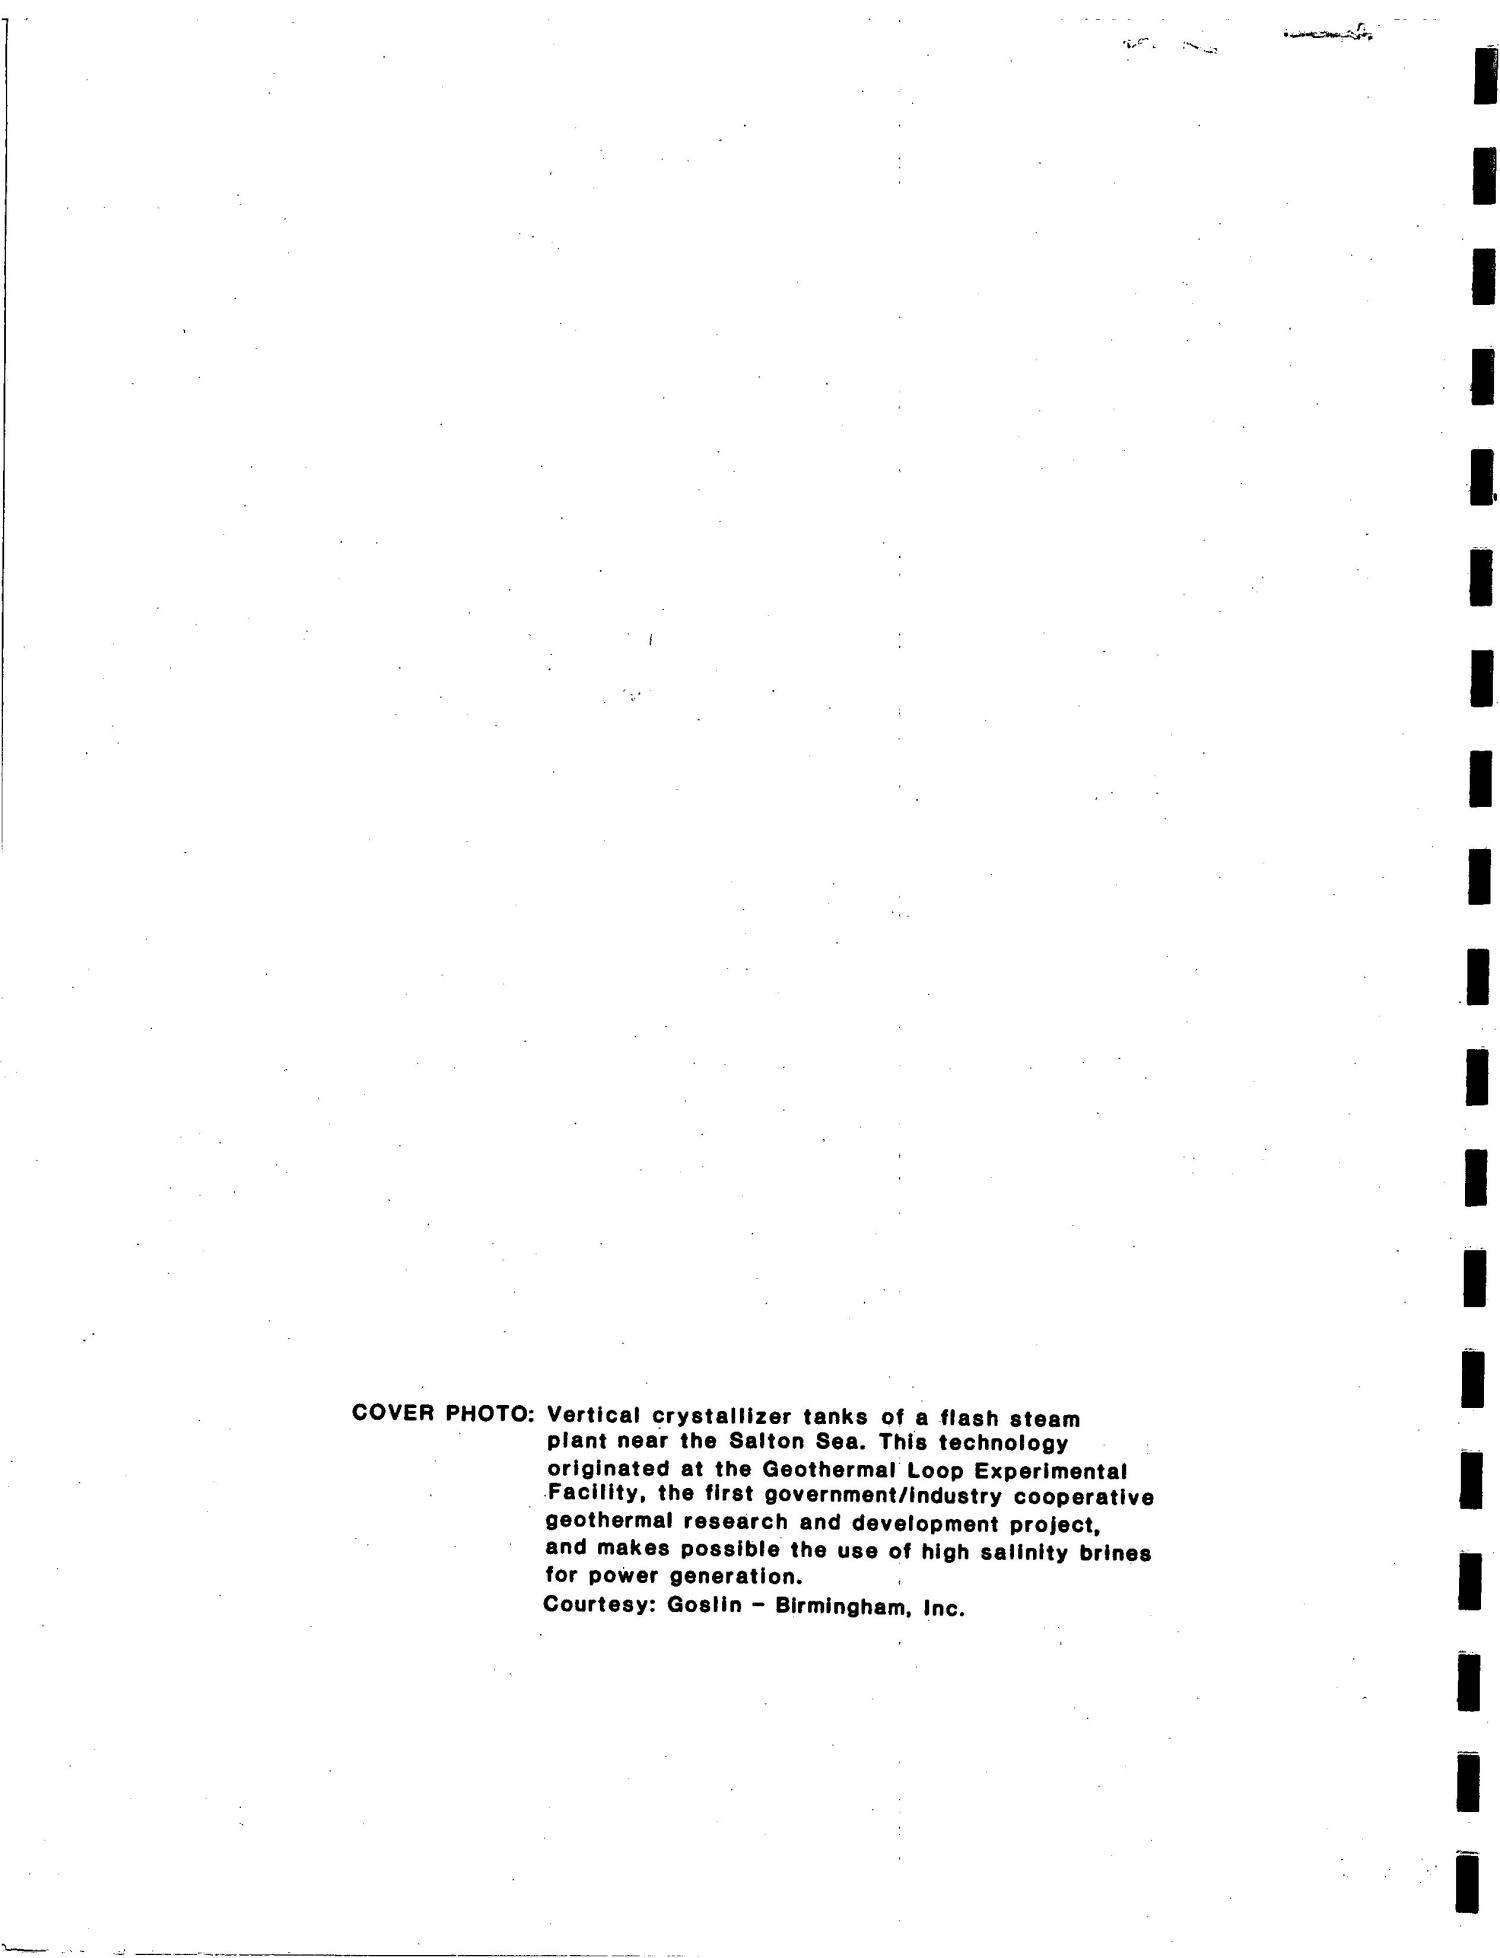 U.S Geothermal Energy Program five year research plan, 1986--1990. Draft of July 1986                                                                                                      [Sequence #]: 4 of 82